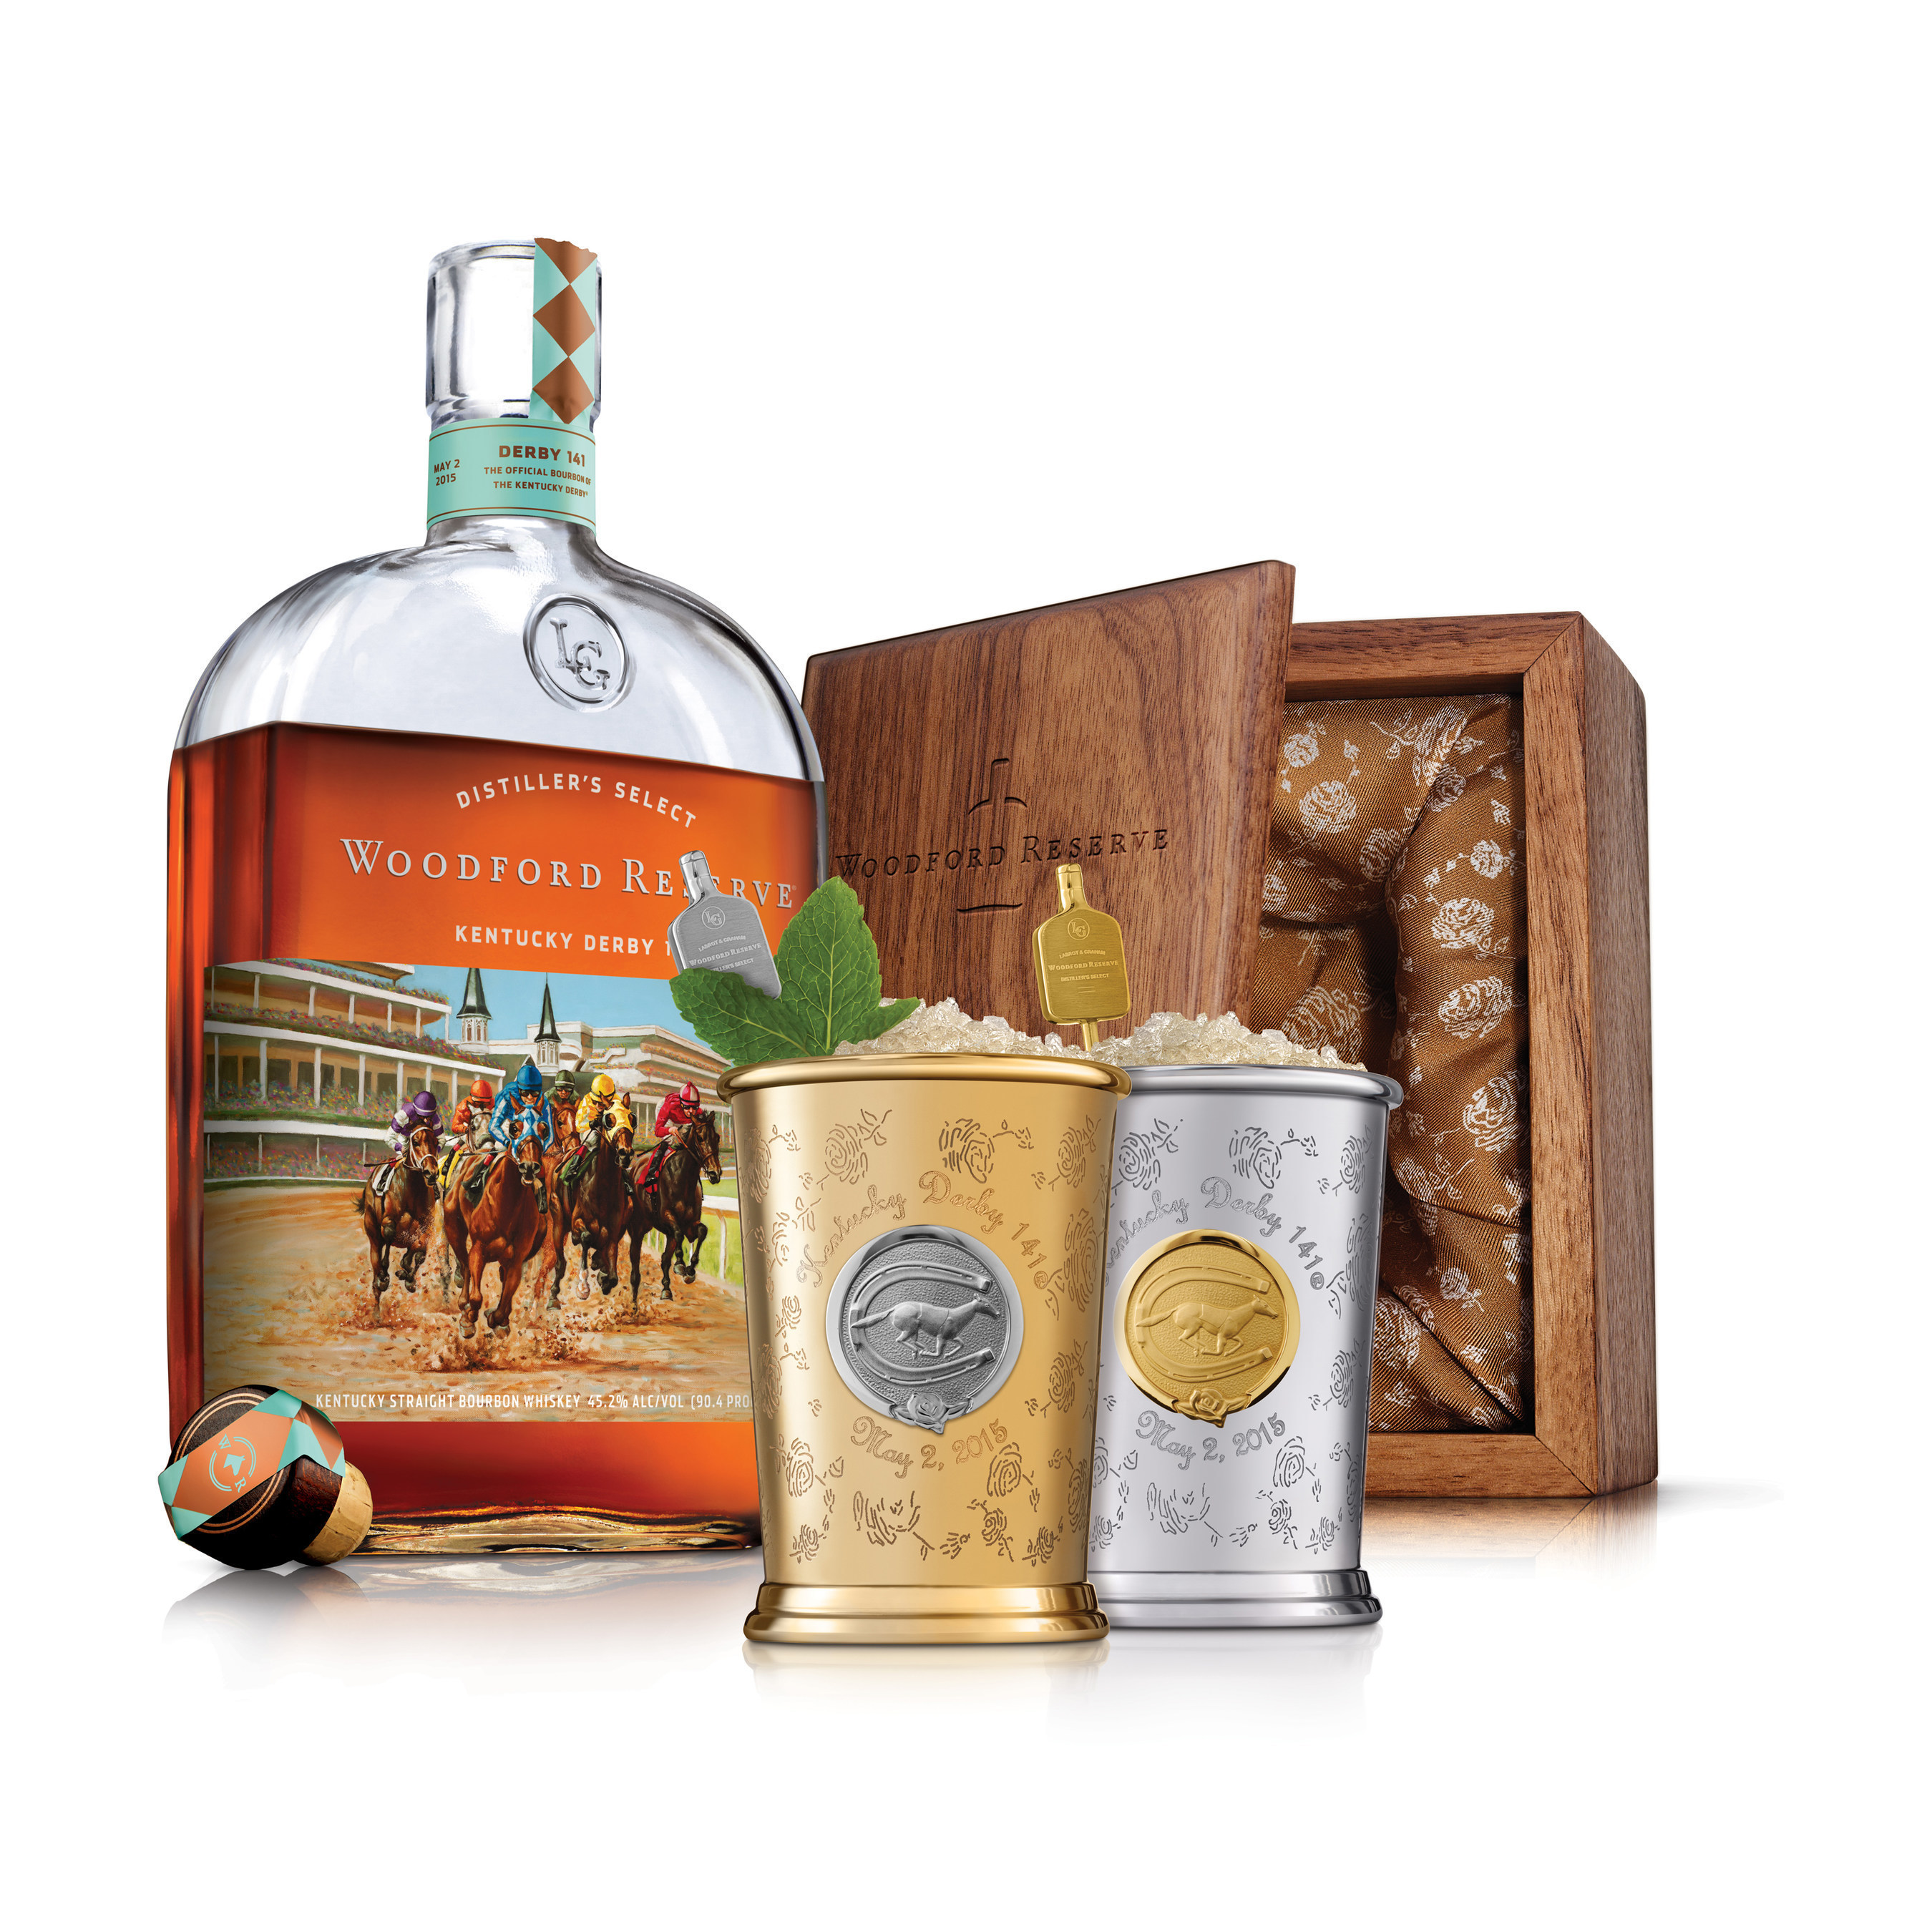 Woodford Reserve Teams Up with Fashion & Mixology's Most Notable Names to Create $1,000 Kentucky Derby Mint Julep Cup.